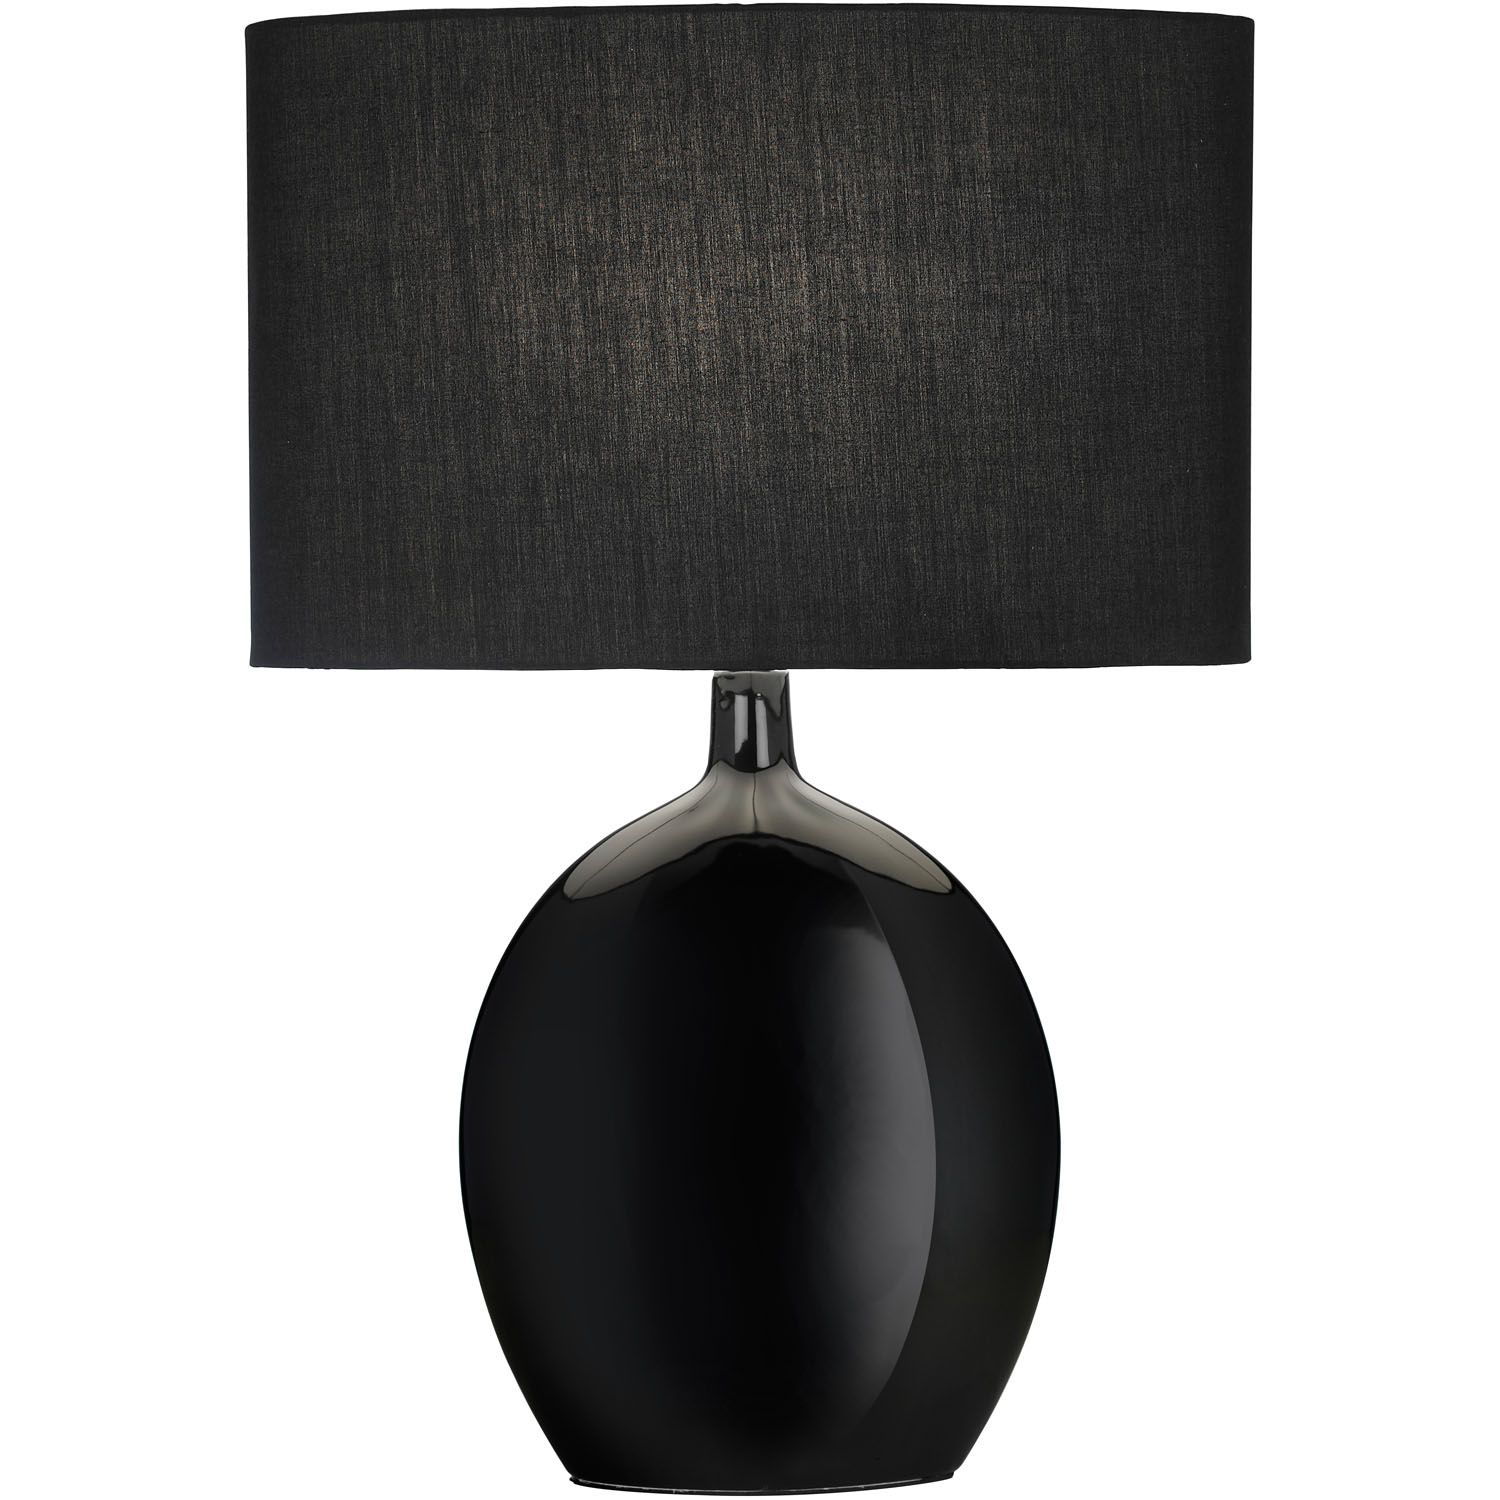 Argos bedroom table lamps design ideas 2017 2018 pinterest explore black lamp shades black lamps and more geotapseo Choice Image